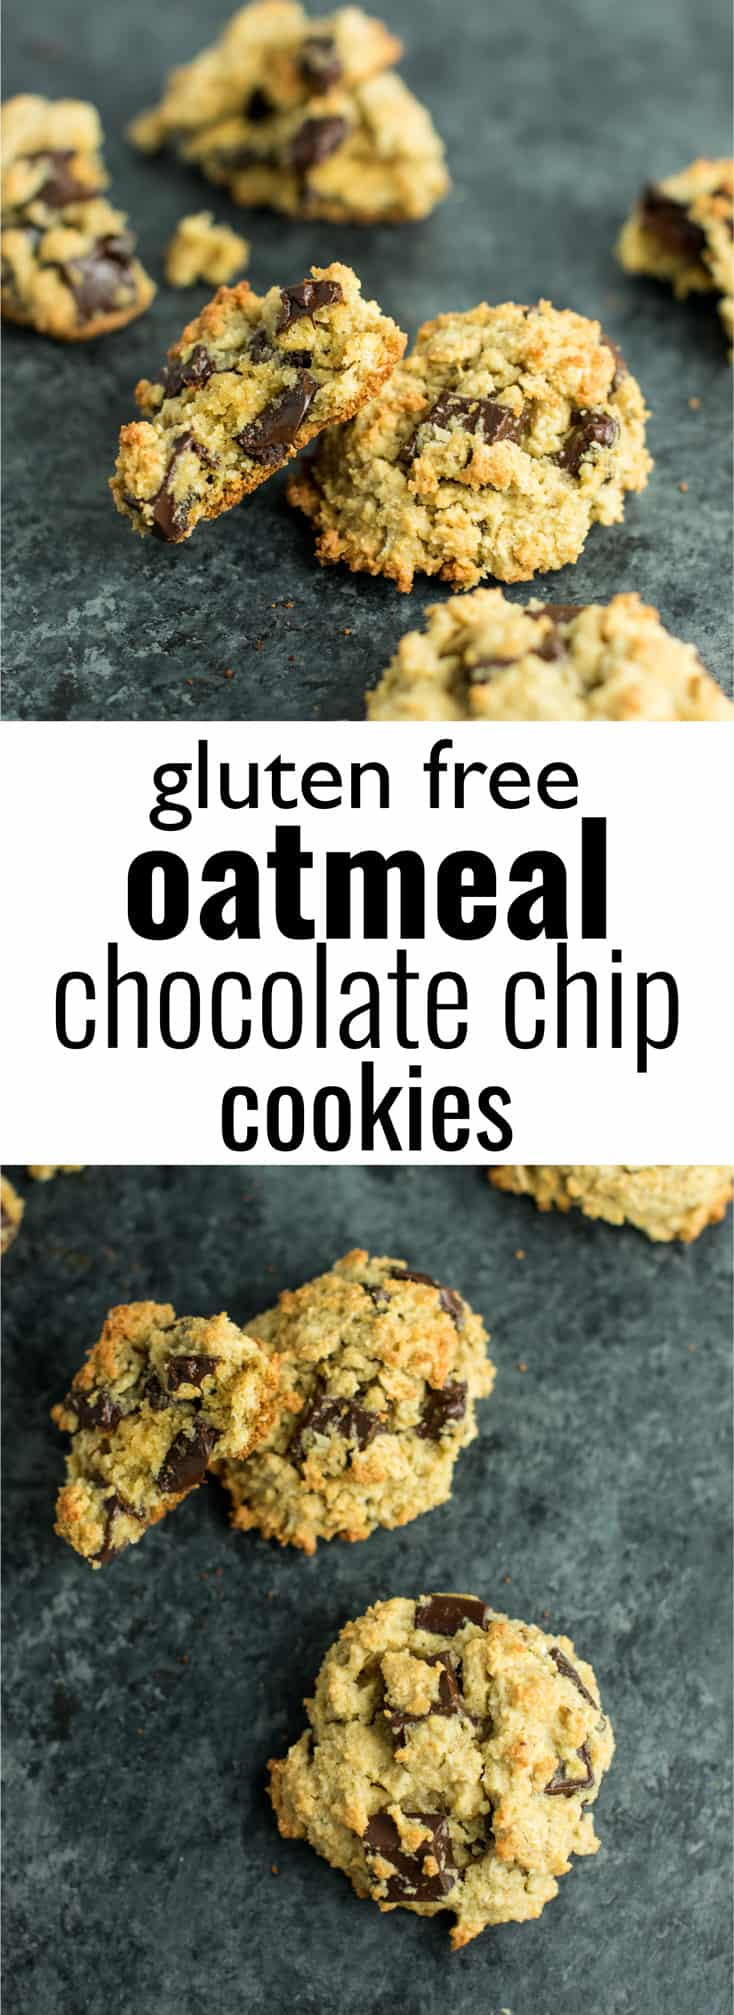 Gluten Free Oatmeal Chocolate Chip Cookies Recipe - with ...